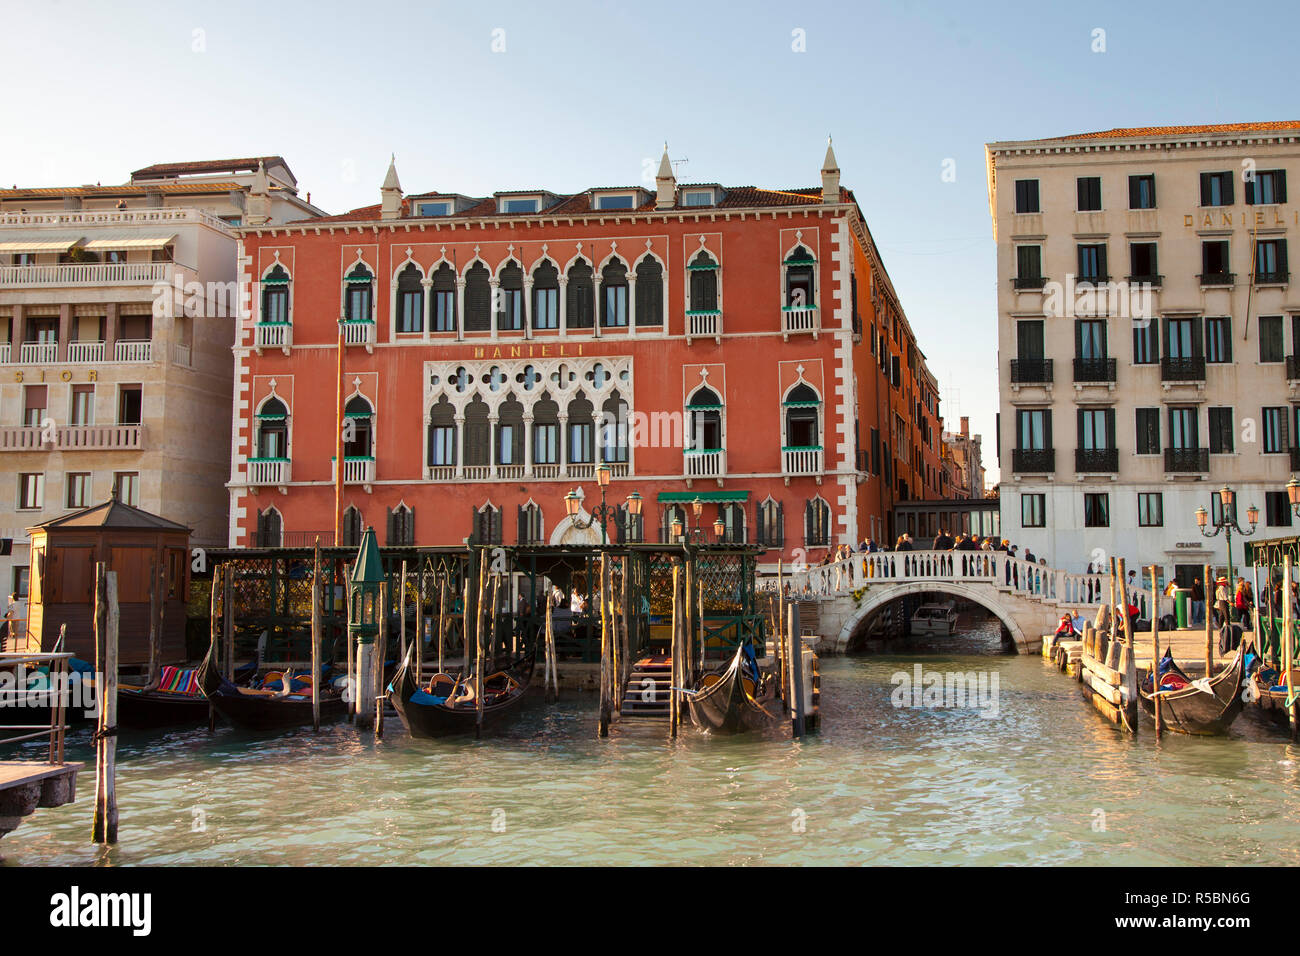 Hotel Danieli Venice Italy Stock Photo 227066184 Alamy